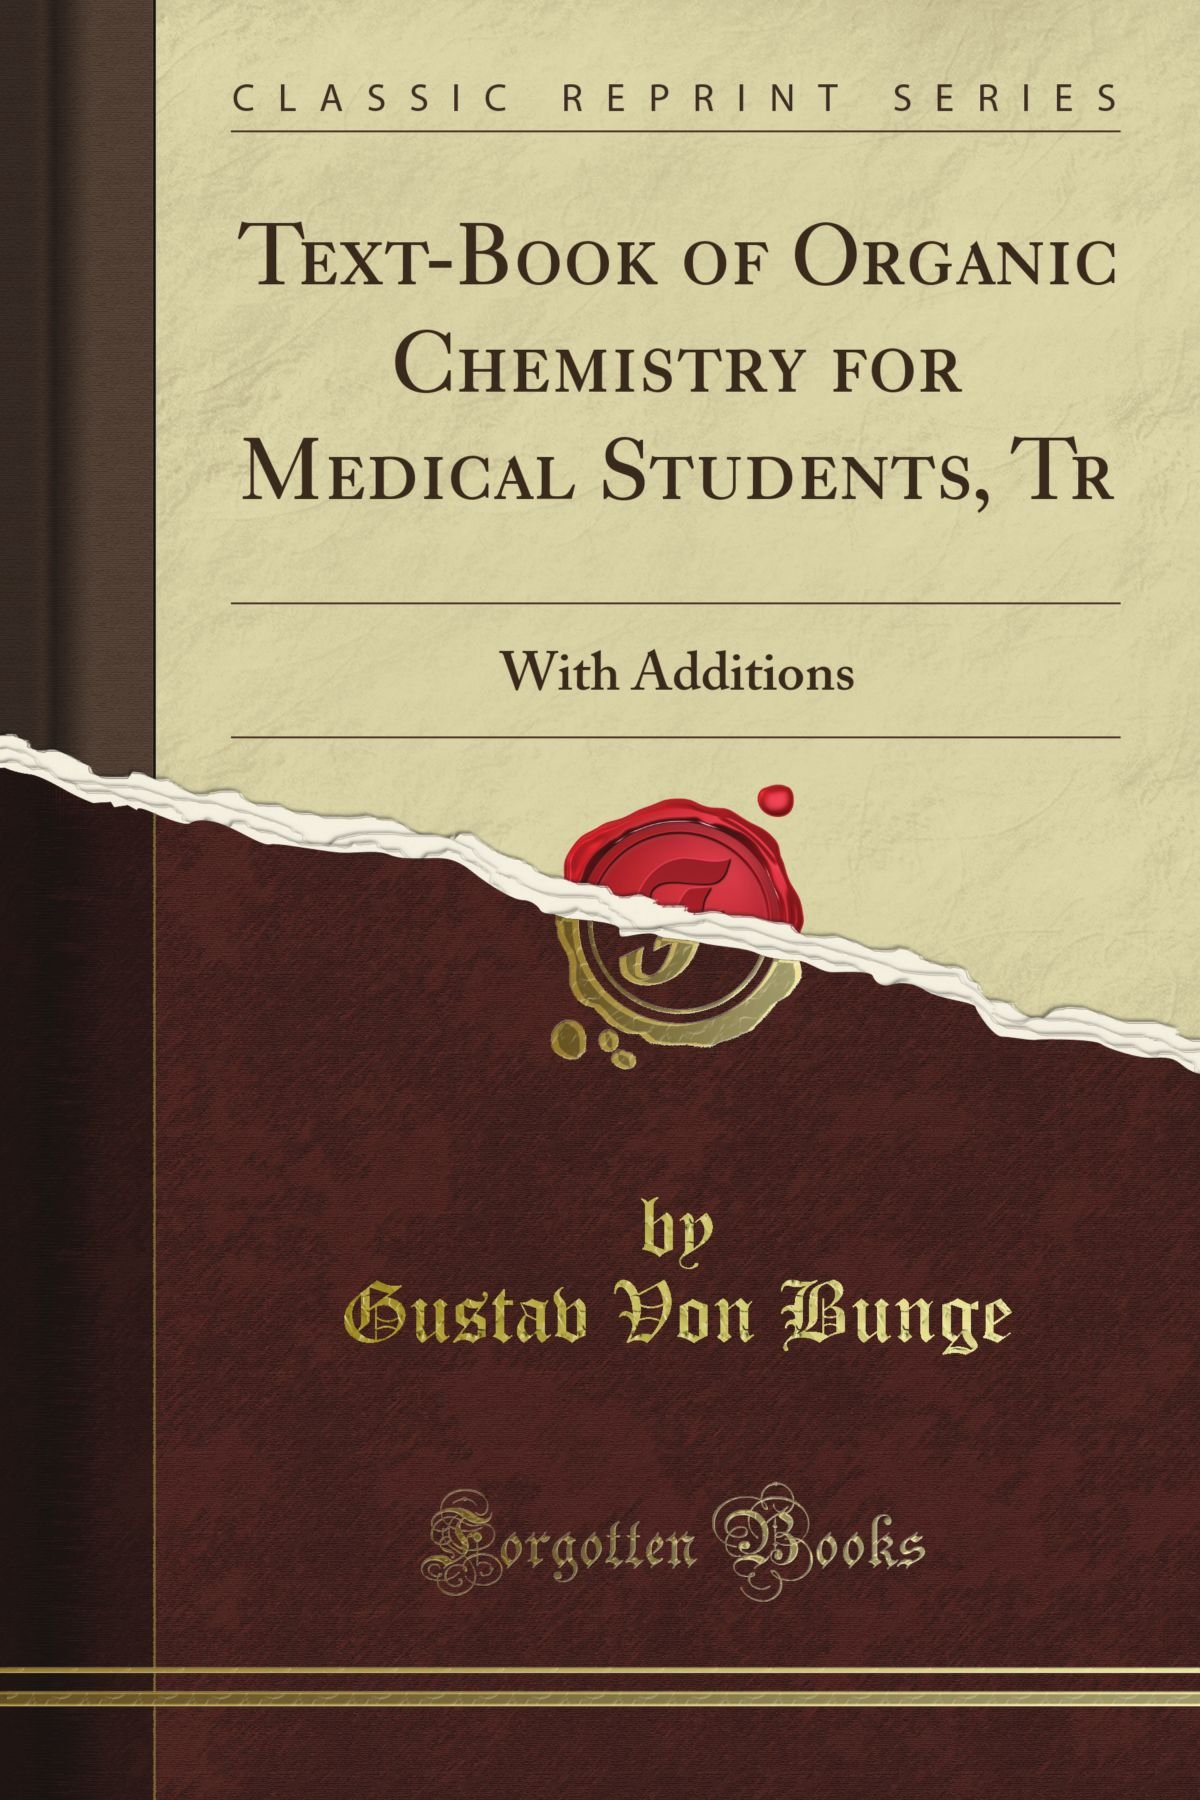 Text-Book of Organic Chemistry for Medical Students, Tr: With Additions (Classic Reprint) PDF